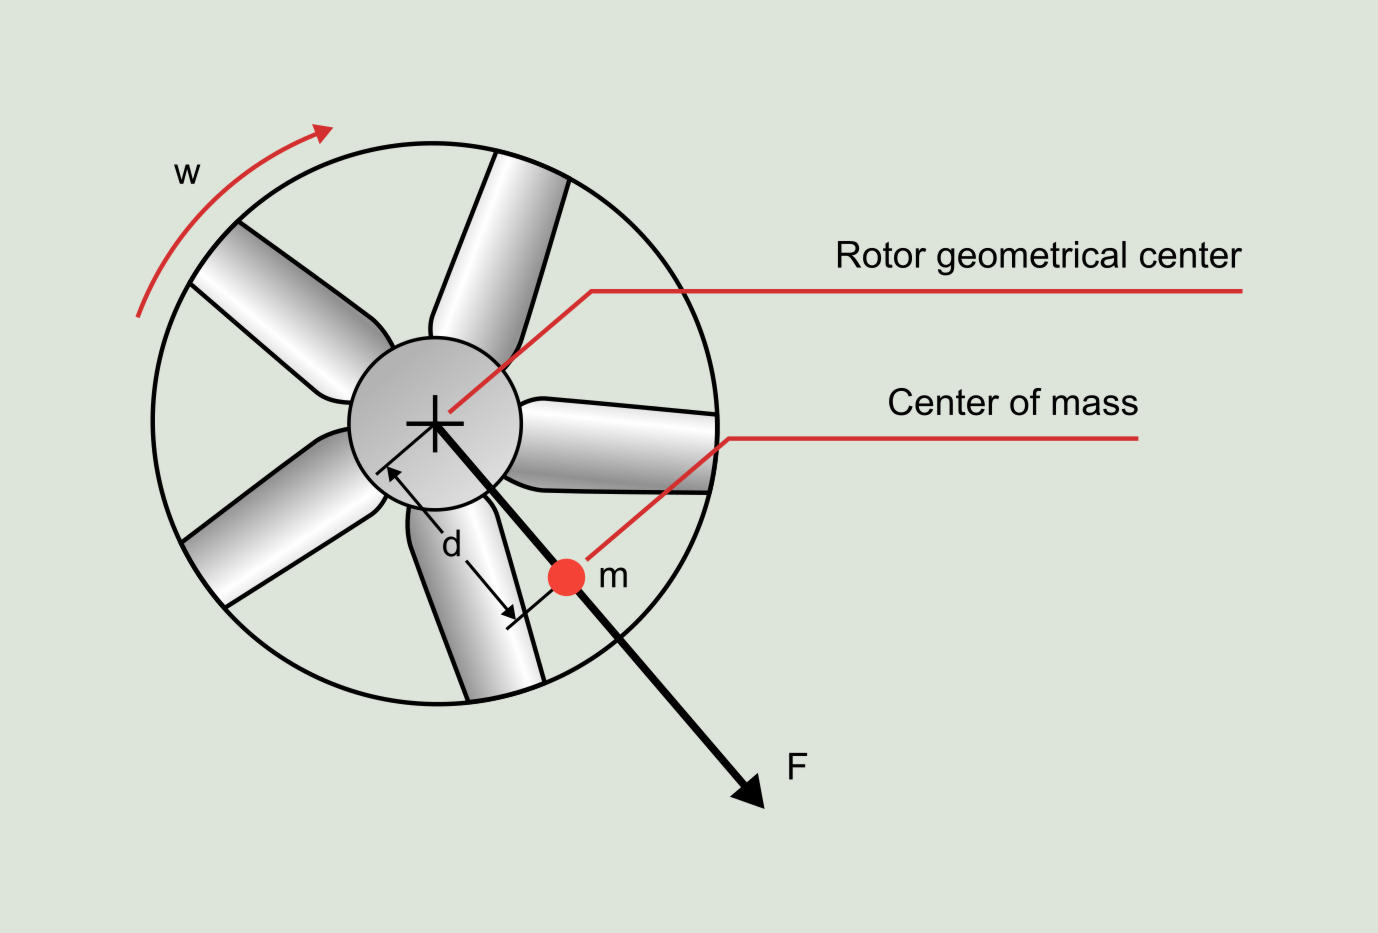 Figure 5.2: Centrifugal force associated with an imbalanced rotor